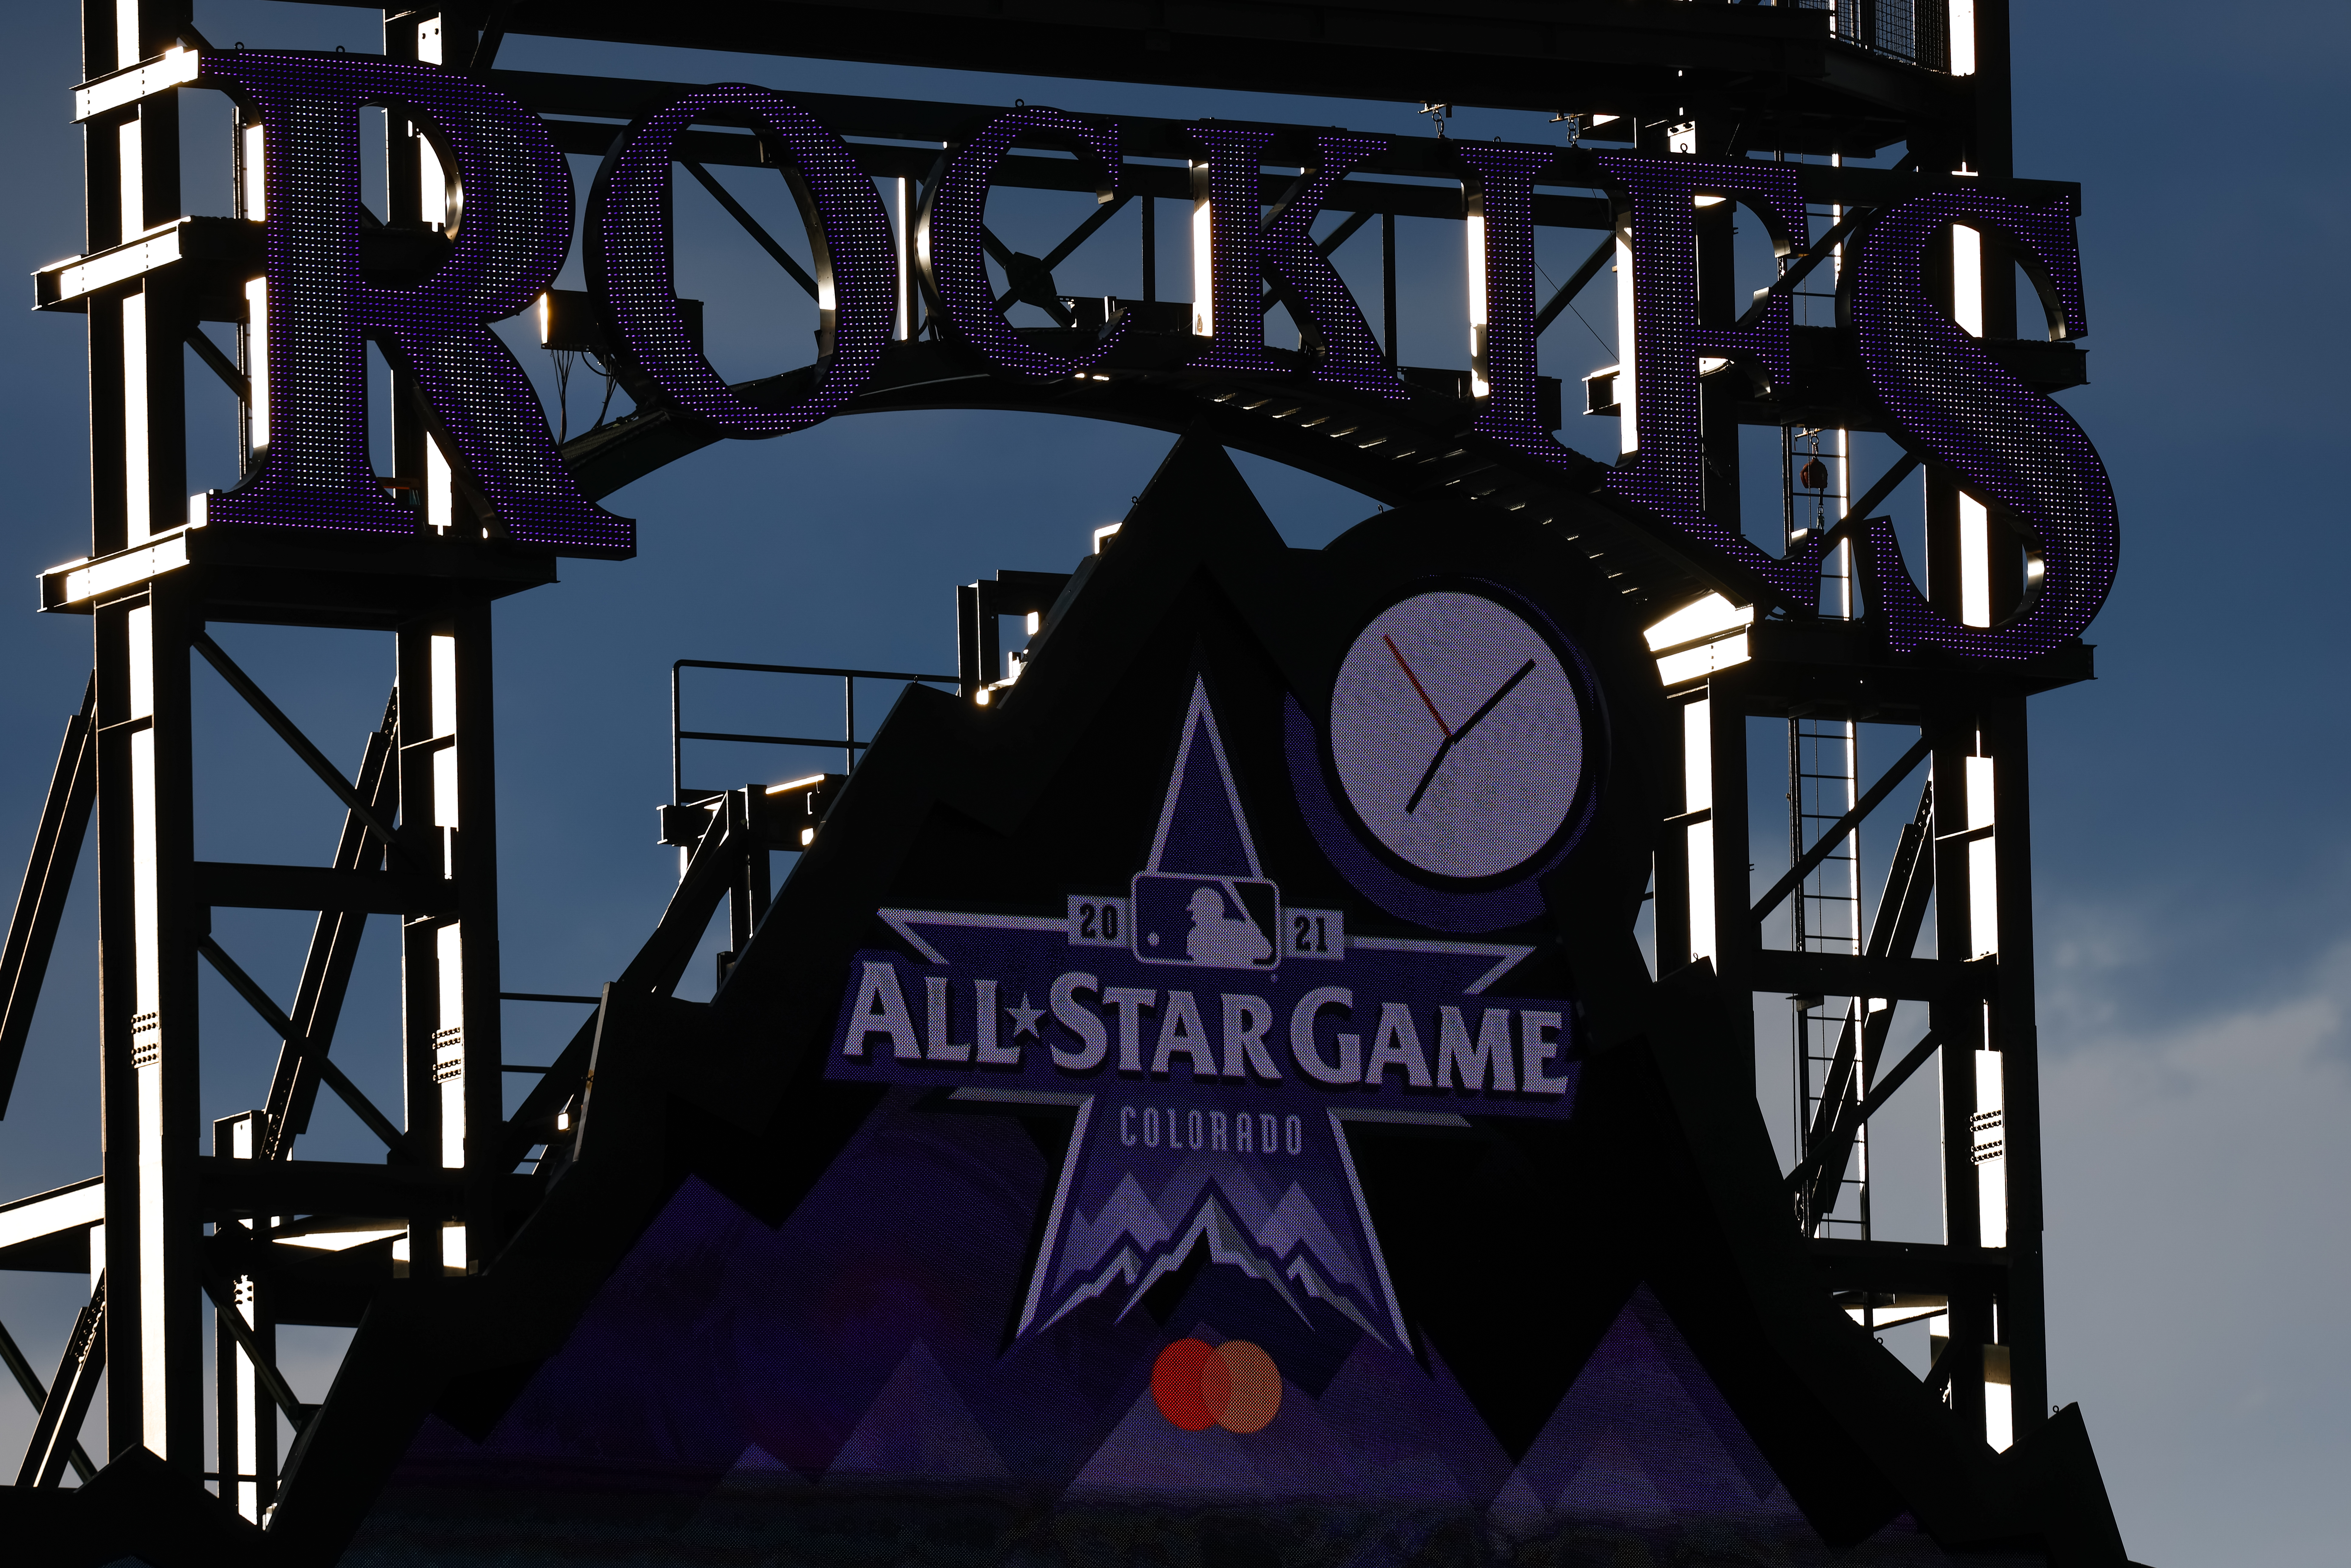 A general view of the scoreboard featuring the All-Star Game logo during a game between the Cincinnati Reds and Colorado Rockies at Coors Field on May 13, 2021 in Denver, Colorado.